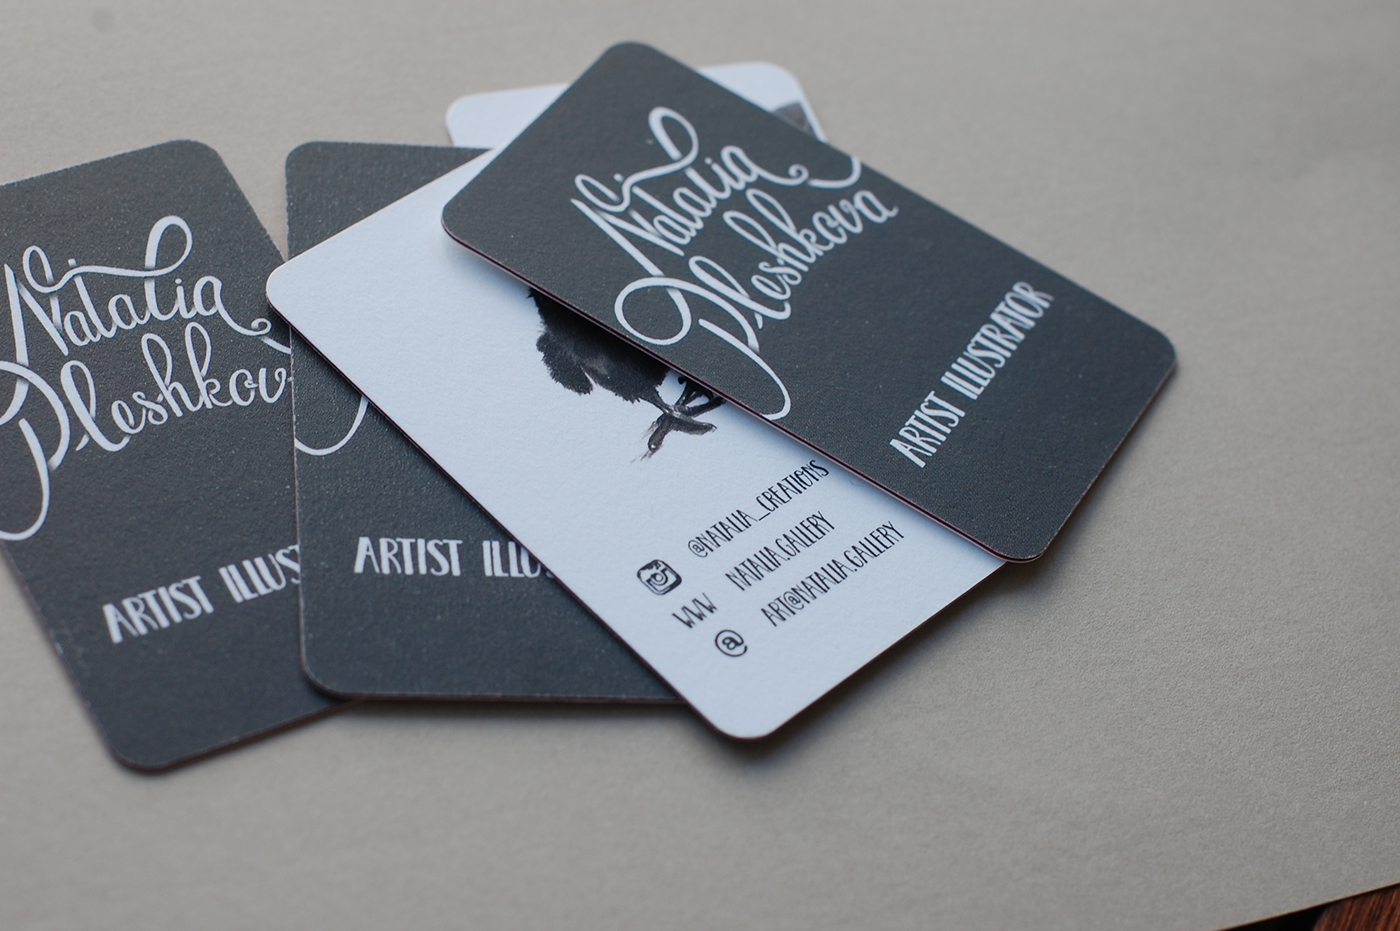 Calligraphy and business cards for Natalia Pleshkova on Behance